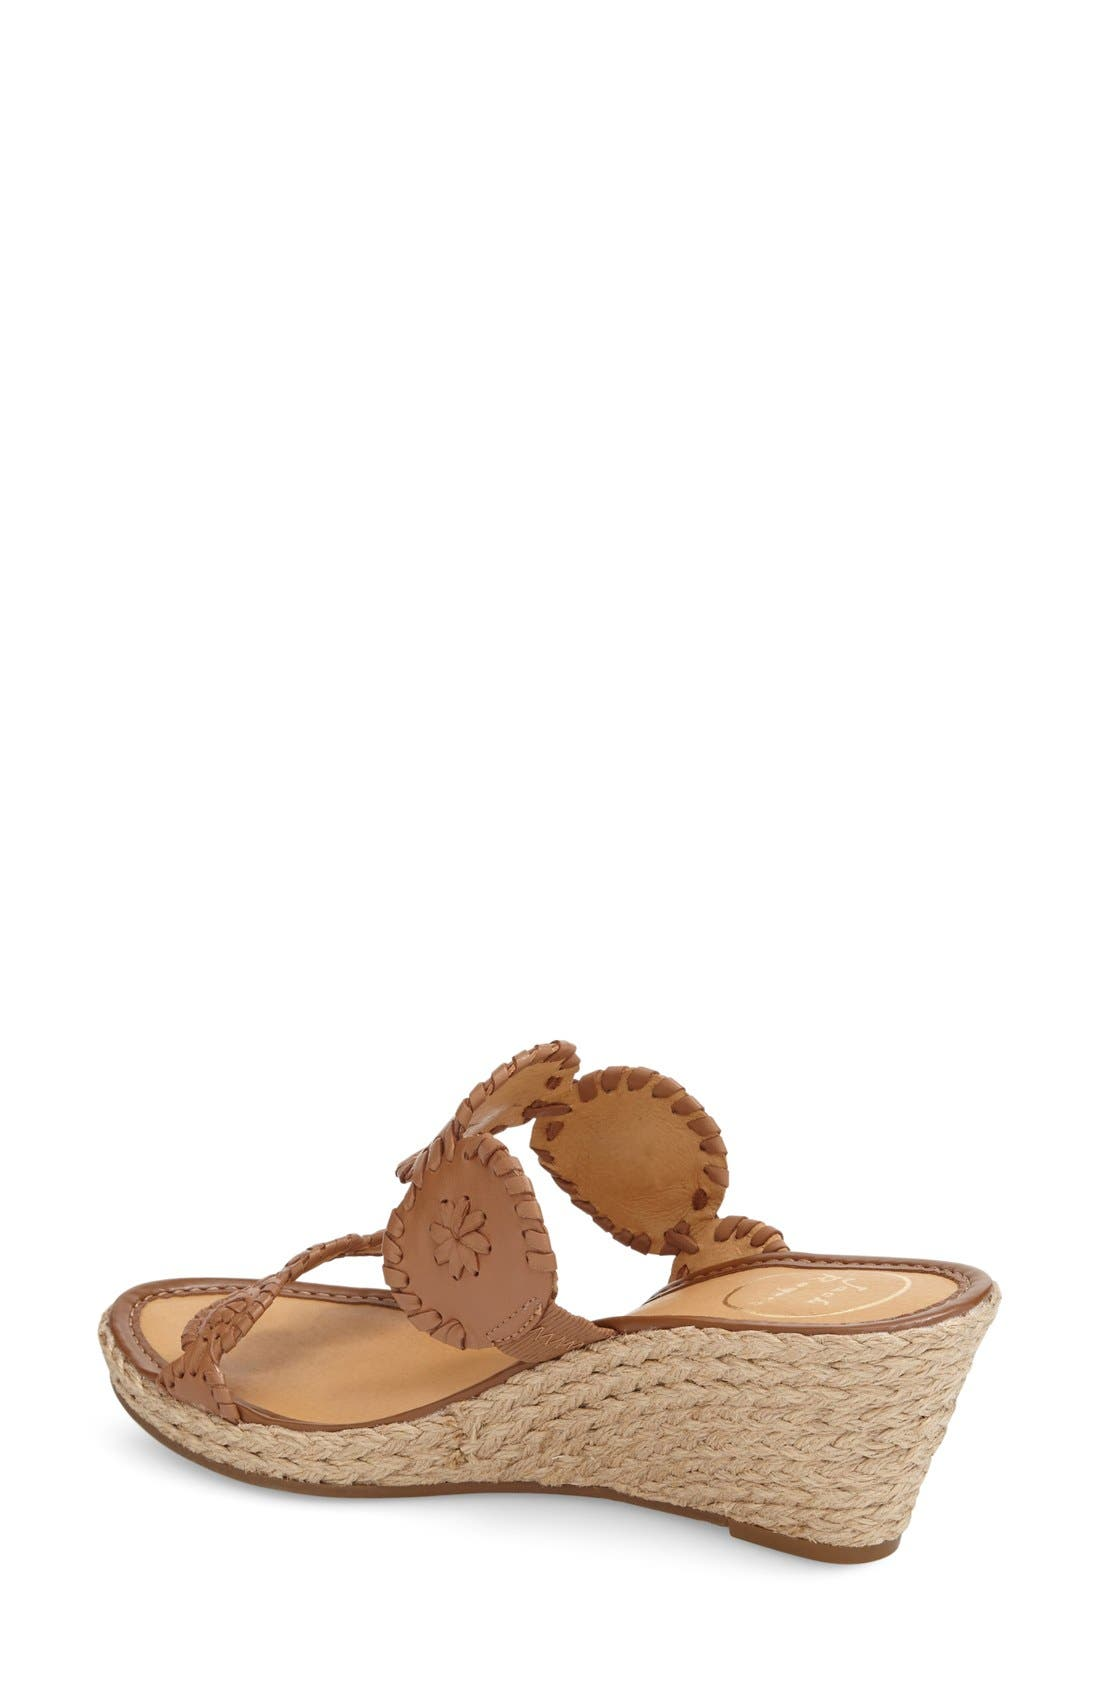 'Shelby' Whipstitched Wedge Sandal,                             Alternate thumbnail 2, color,                             COGNAC